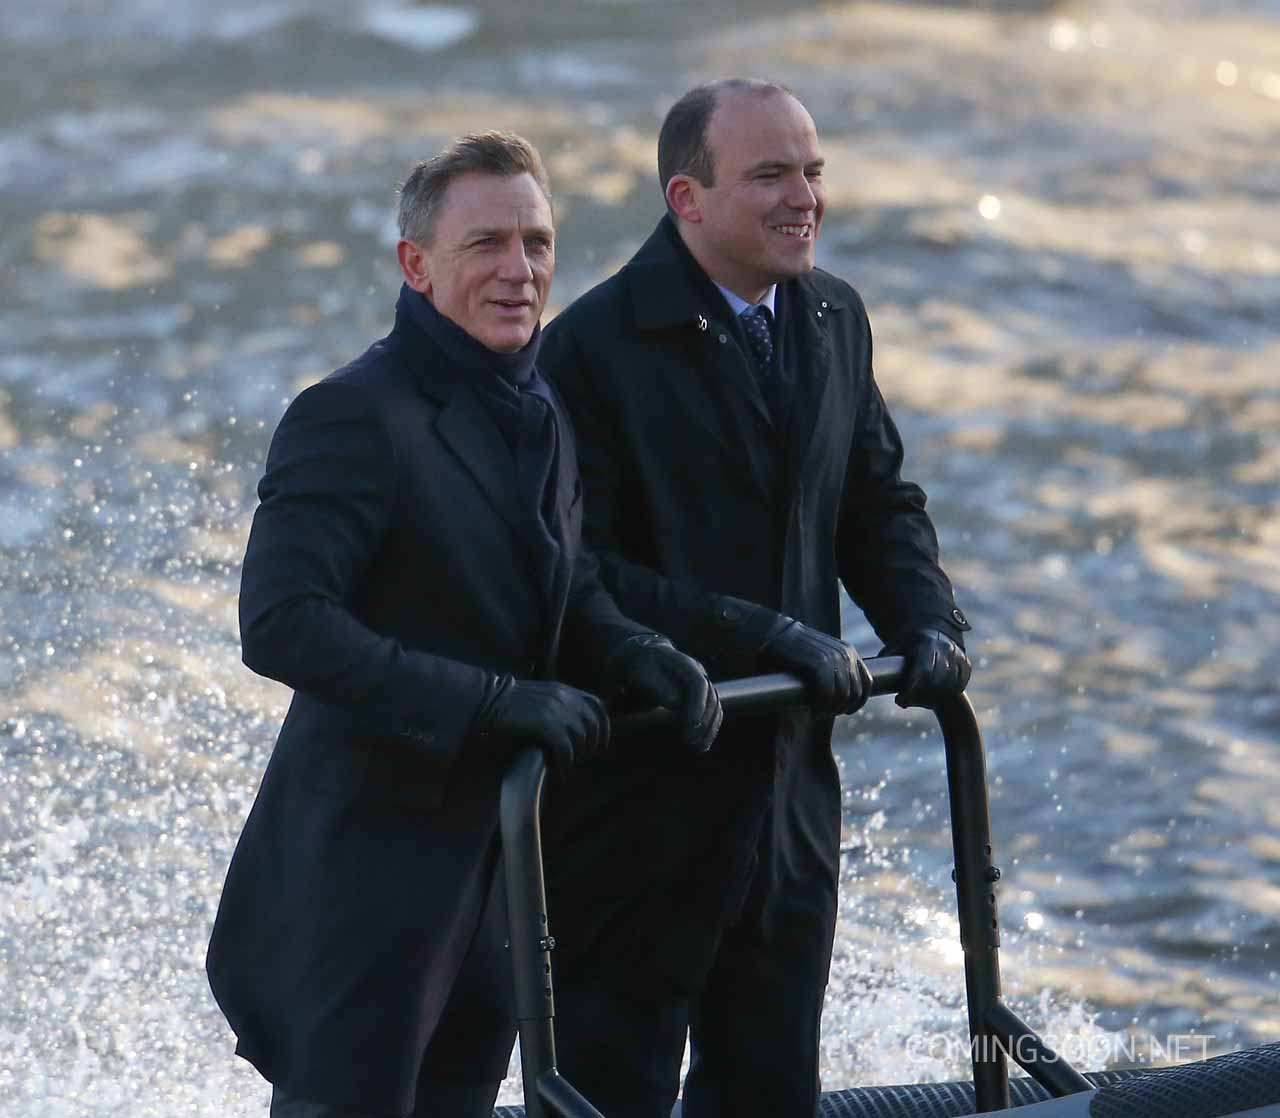 Daniel Craig and Rory Kinnear film a scene for the new Bond movie Spectre on the River Thames in London Featuring: Daniel Craig, Rory Kinnear Where: London, United Kingdom When: 15 Dec 2014 Credit: WENN.com